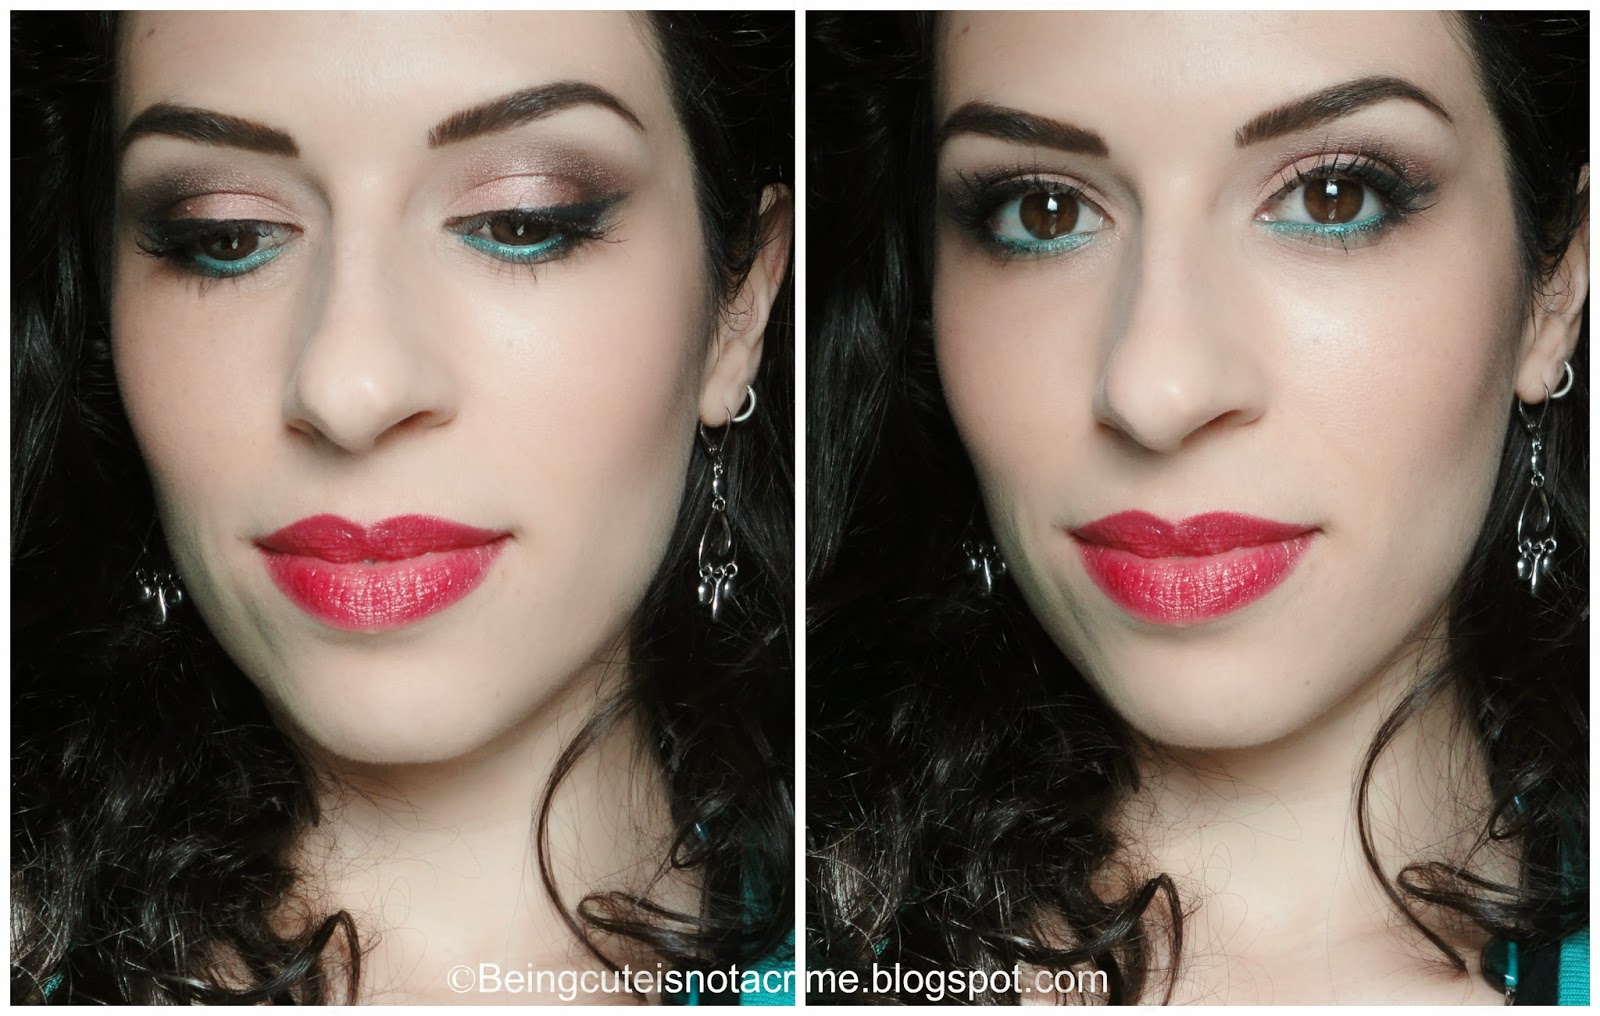 http://beingcuteisnotacrime.blogspot.nl/2014/04/earth-tones-and-aqua-green-make-up-look.html